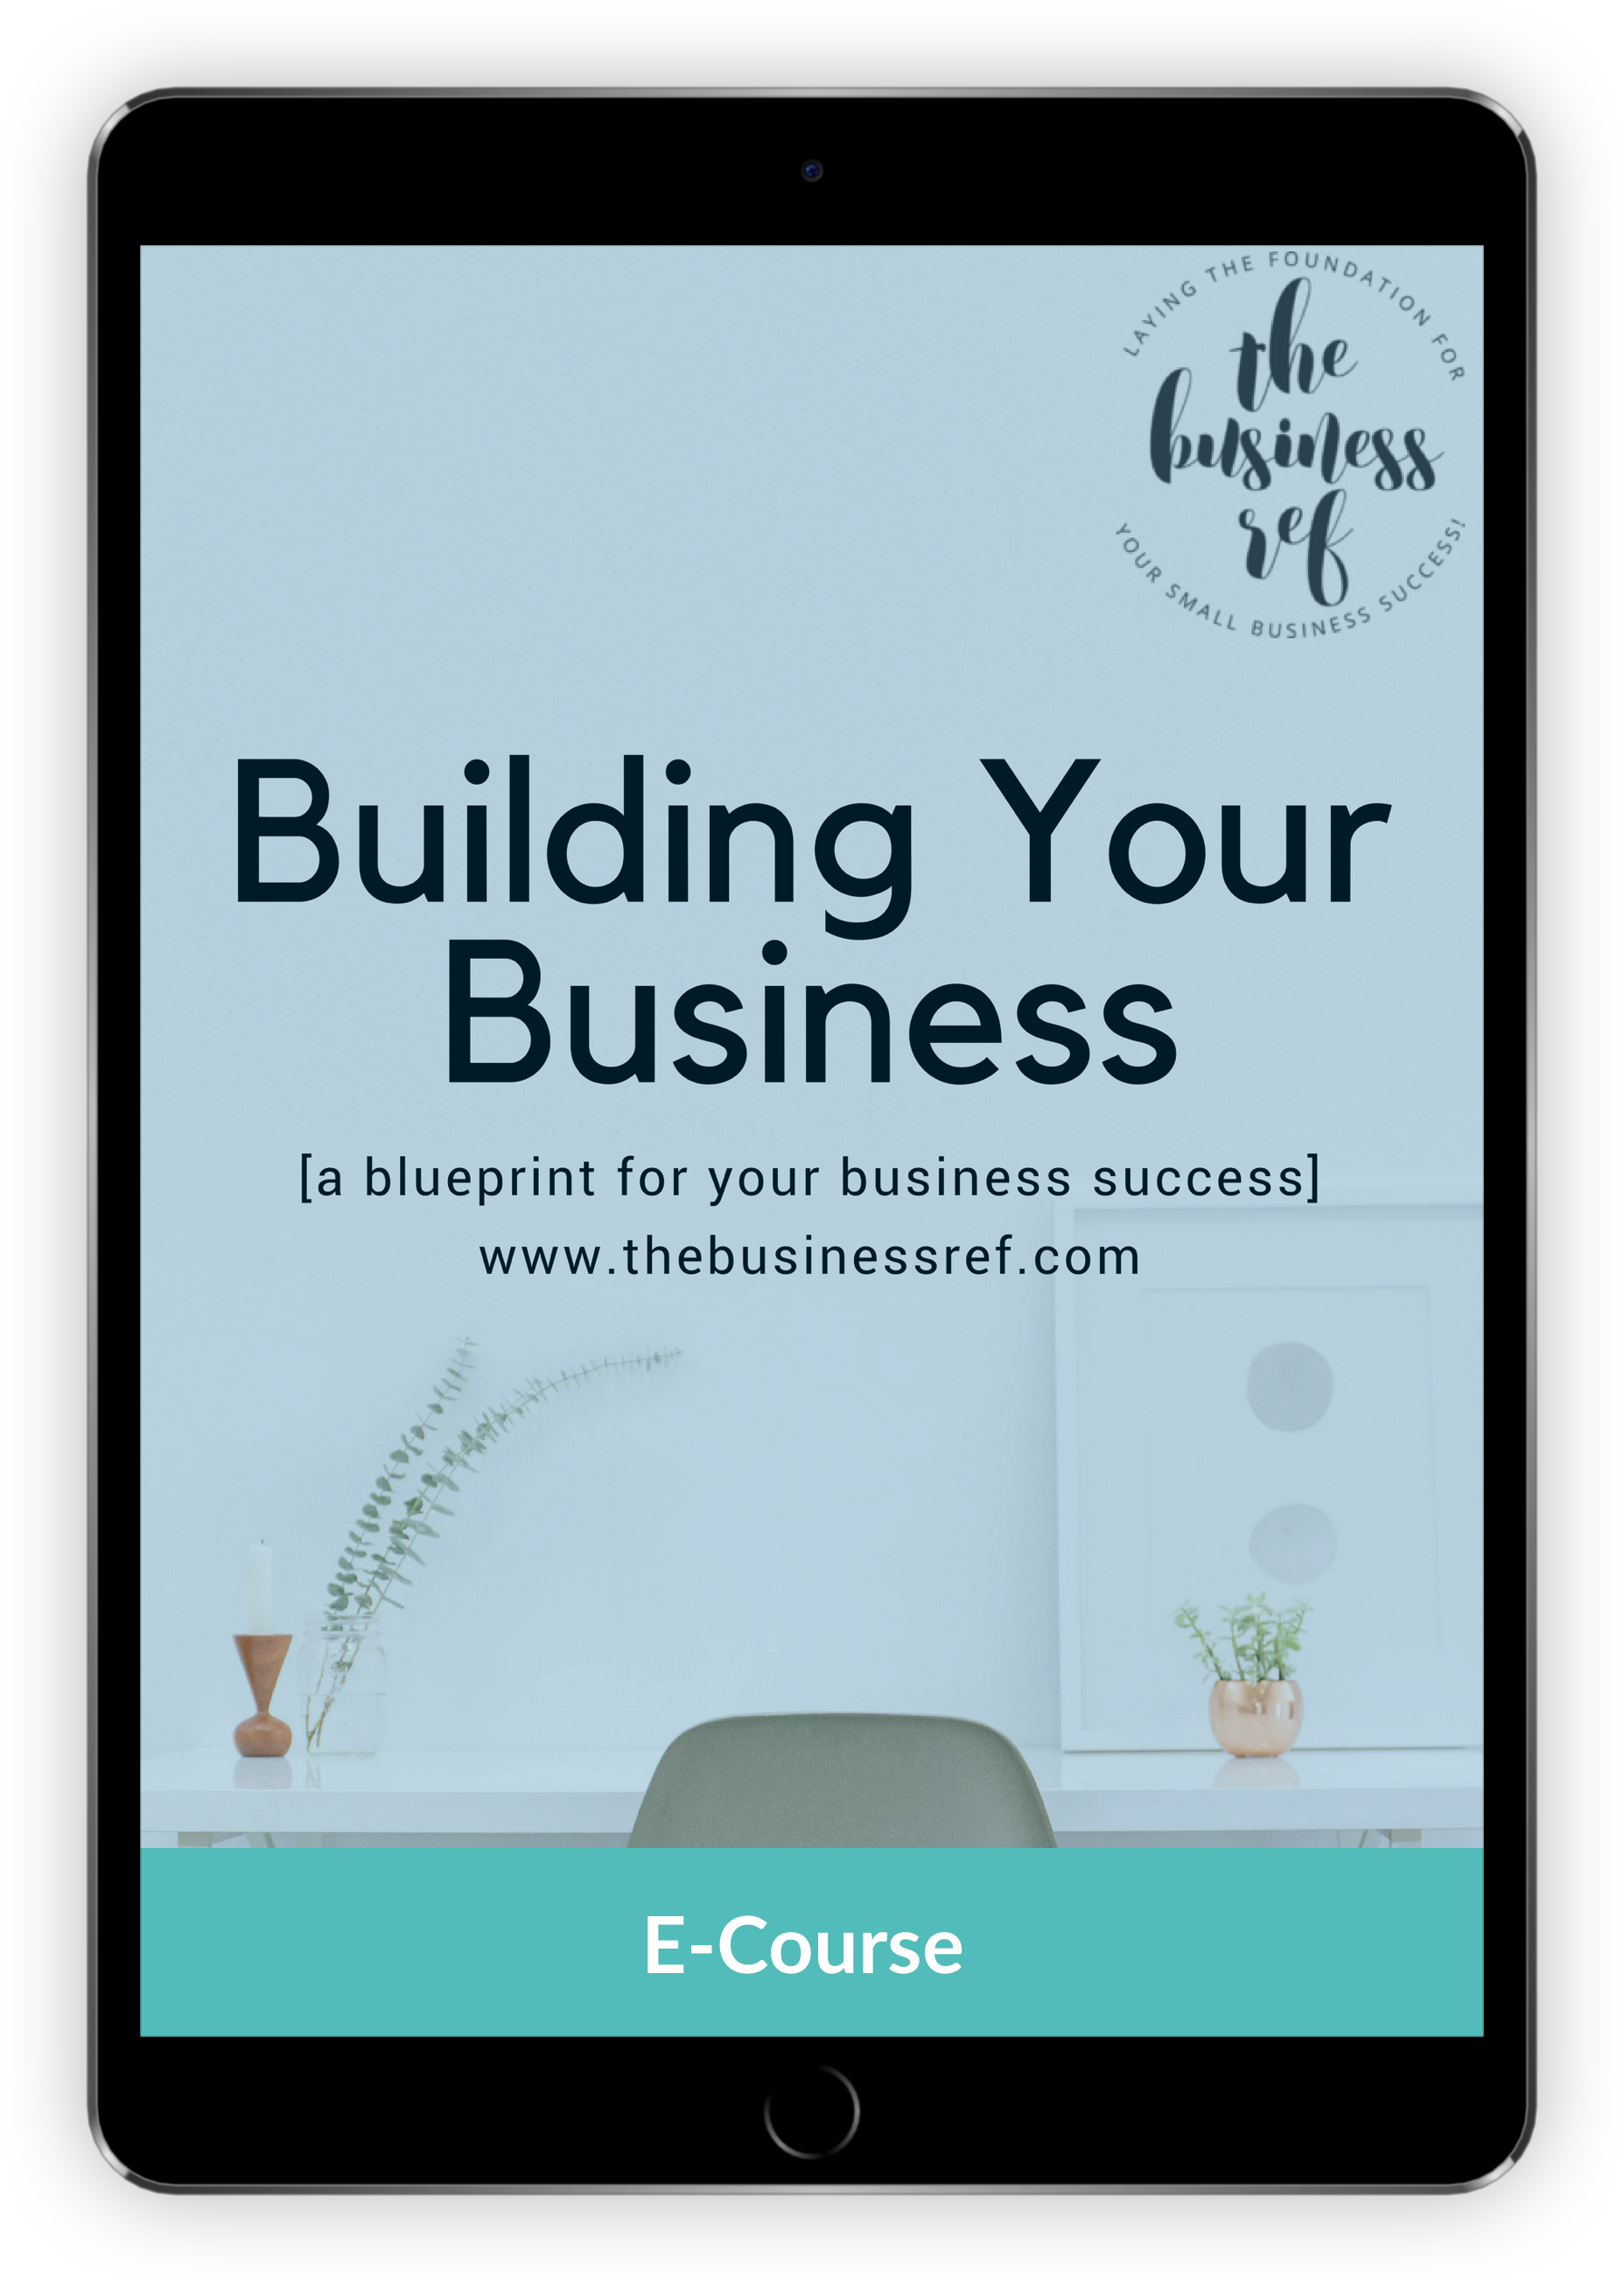 Building Your Business Mockup V2 - Copy.png